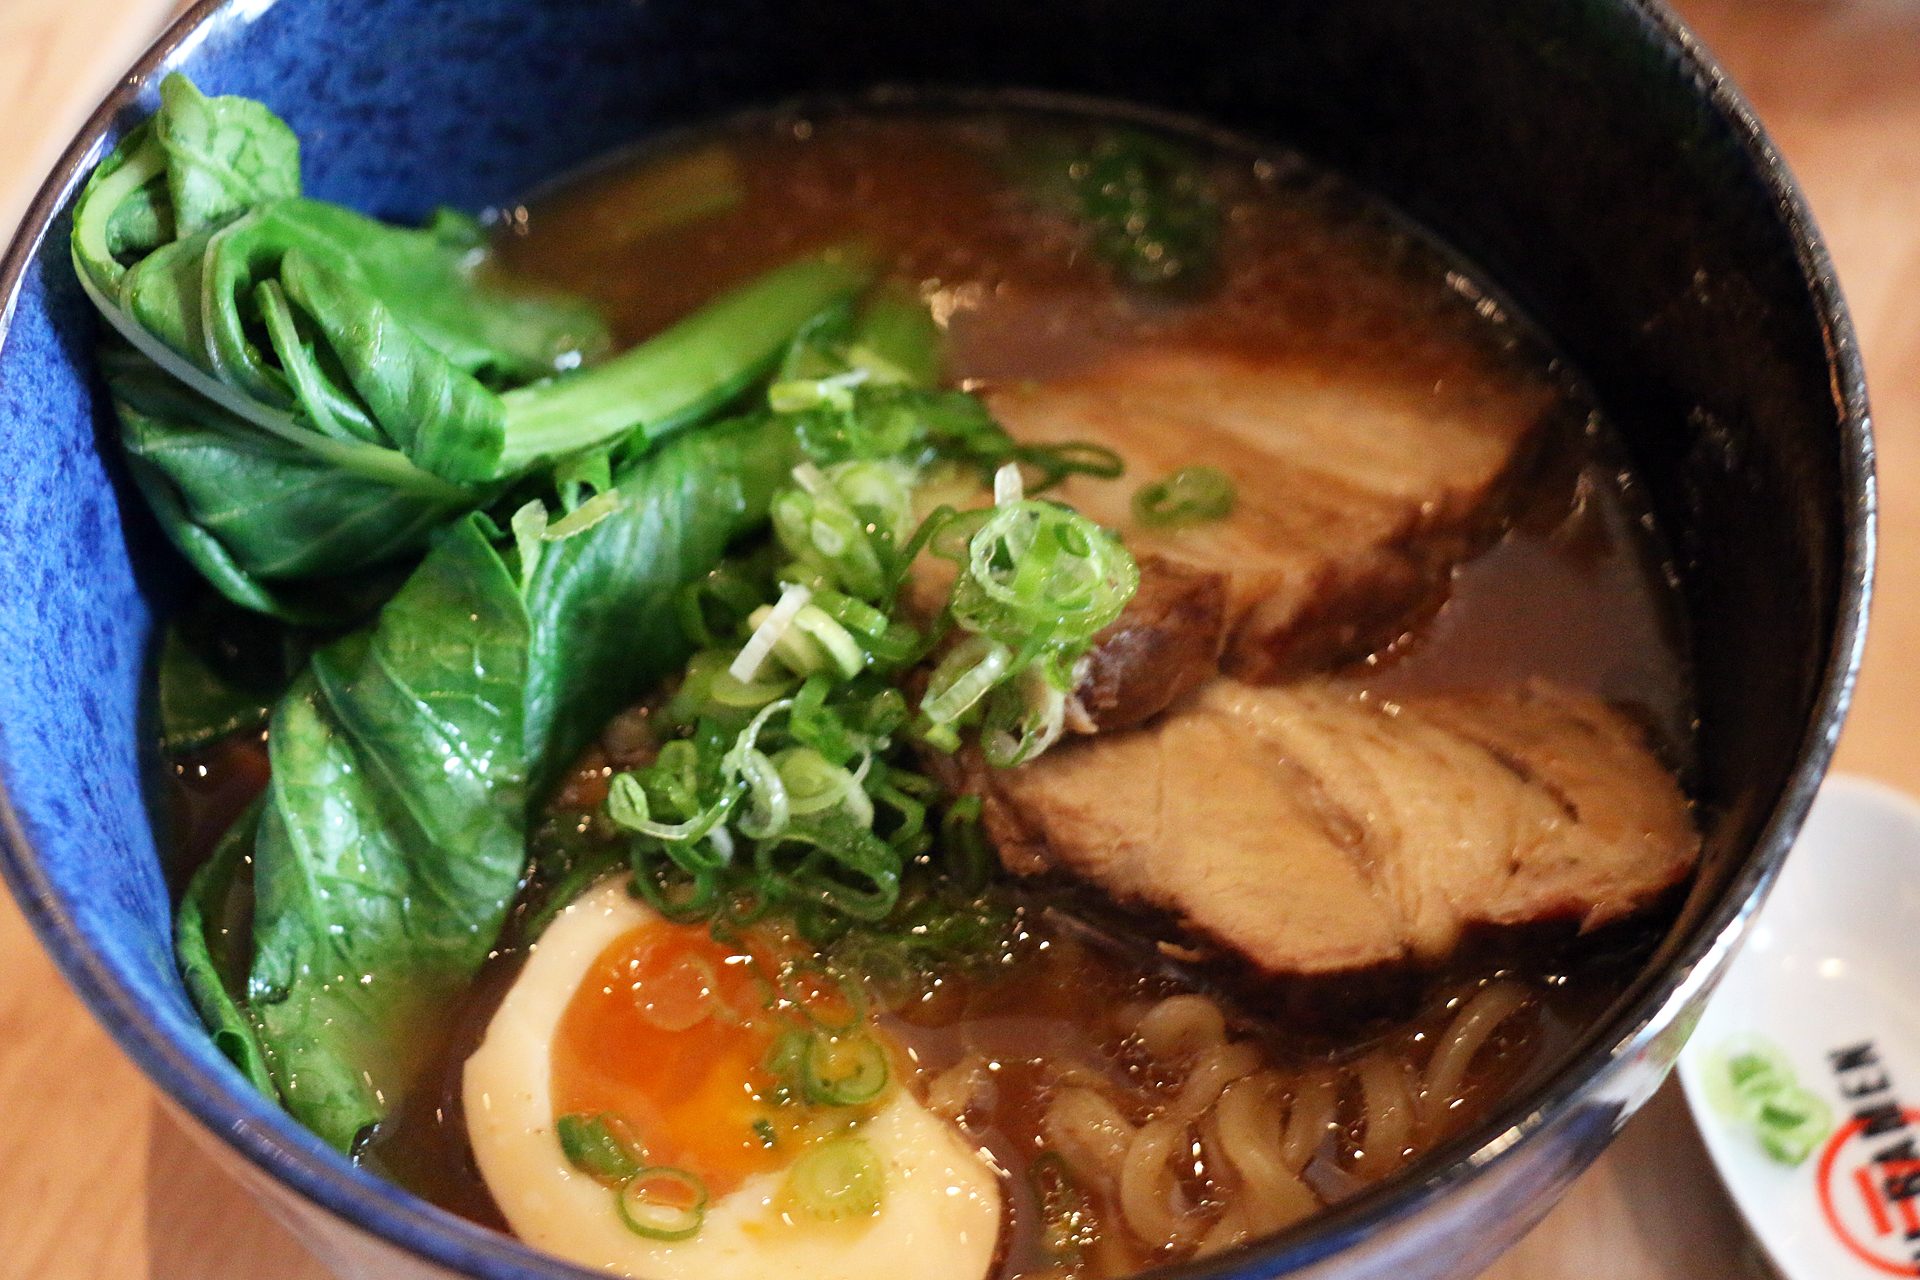 Shoyu ramen with pork cha siu, bamboo shoots, yu choi, green onion, and jidori egg.